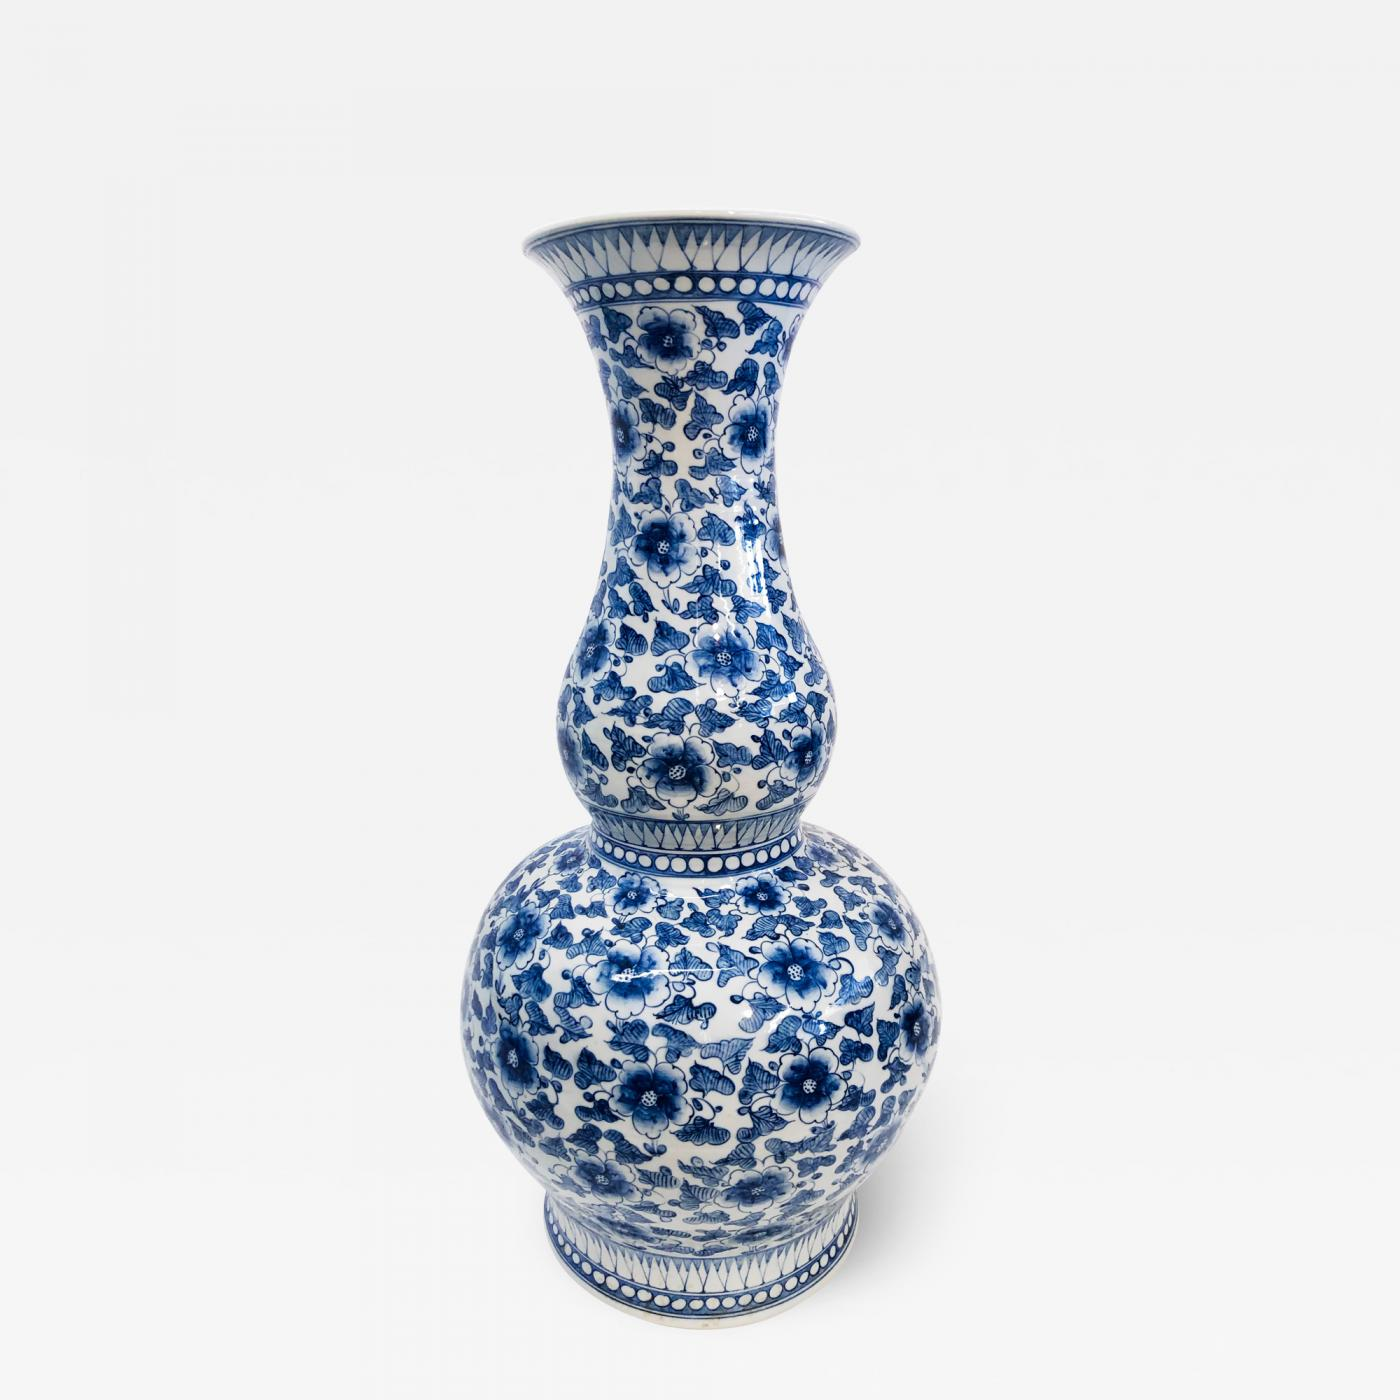 A Large Porcelain Vase made by Maitland Smith. 1970's.